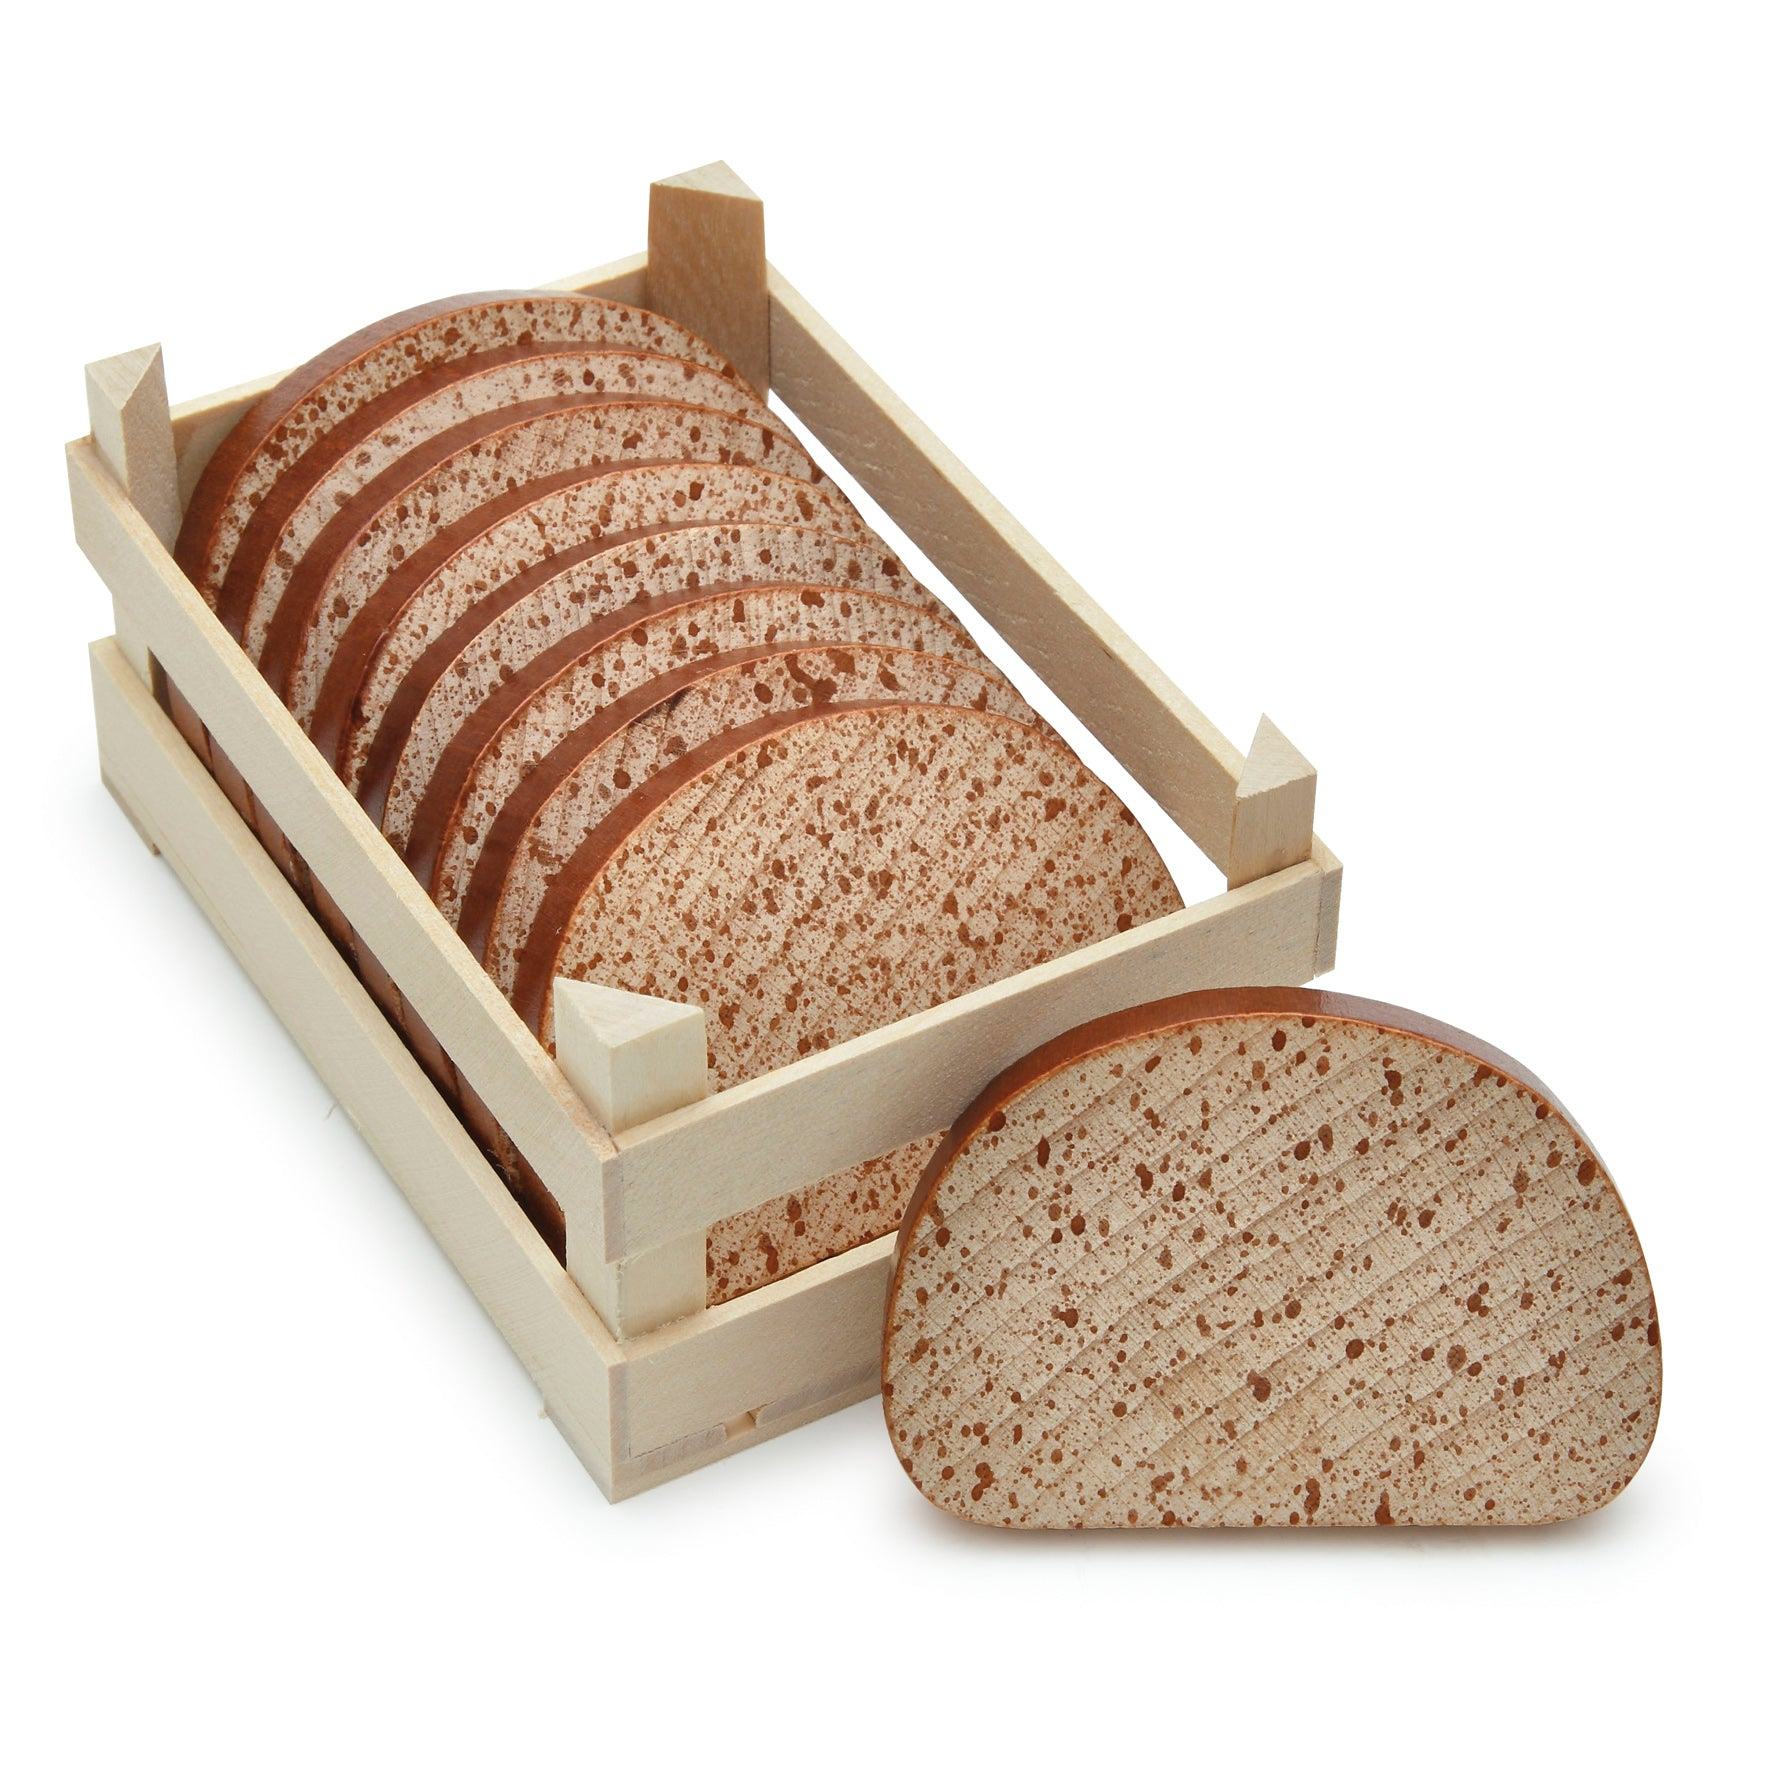 Erzi Slice Of Bread